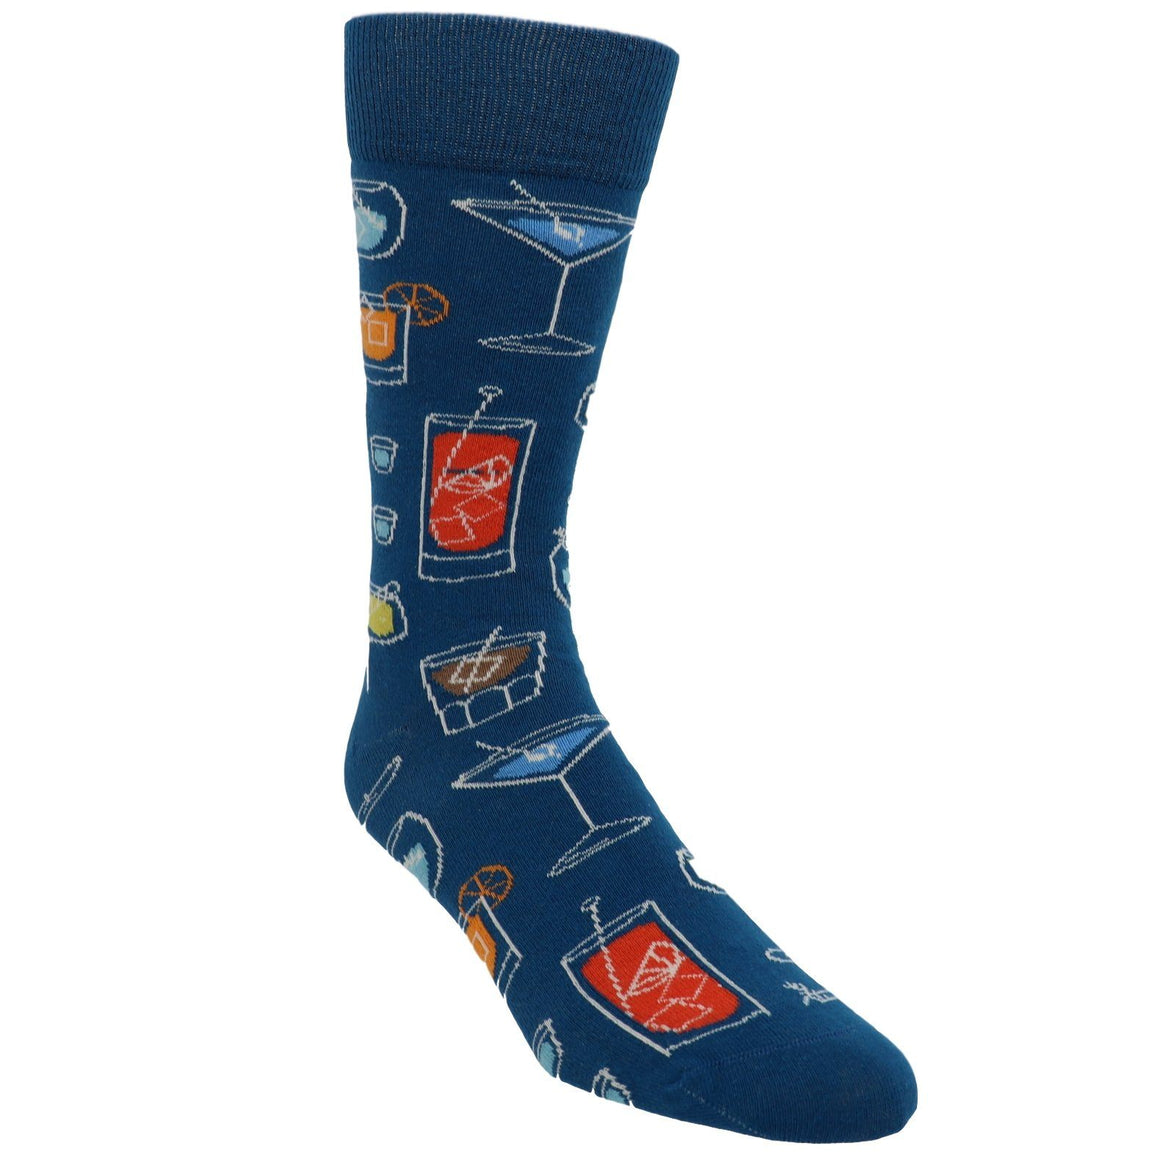 The Old Fashioned Unisex Socks by Funatic - The Sock Spot